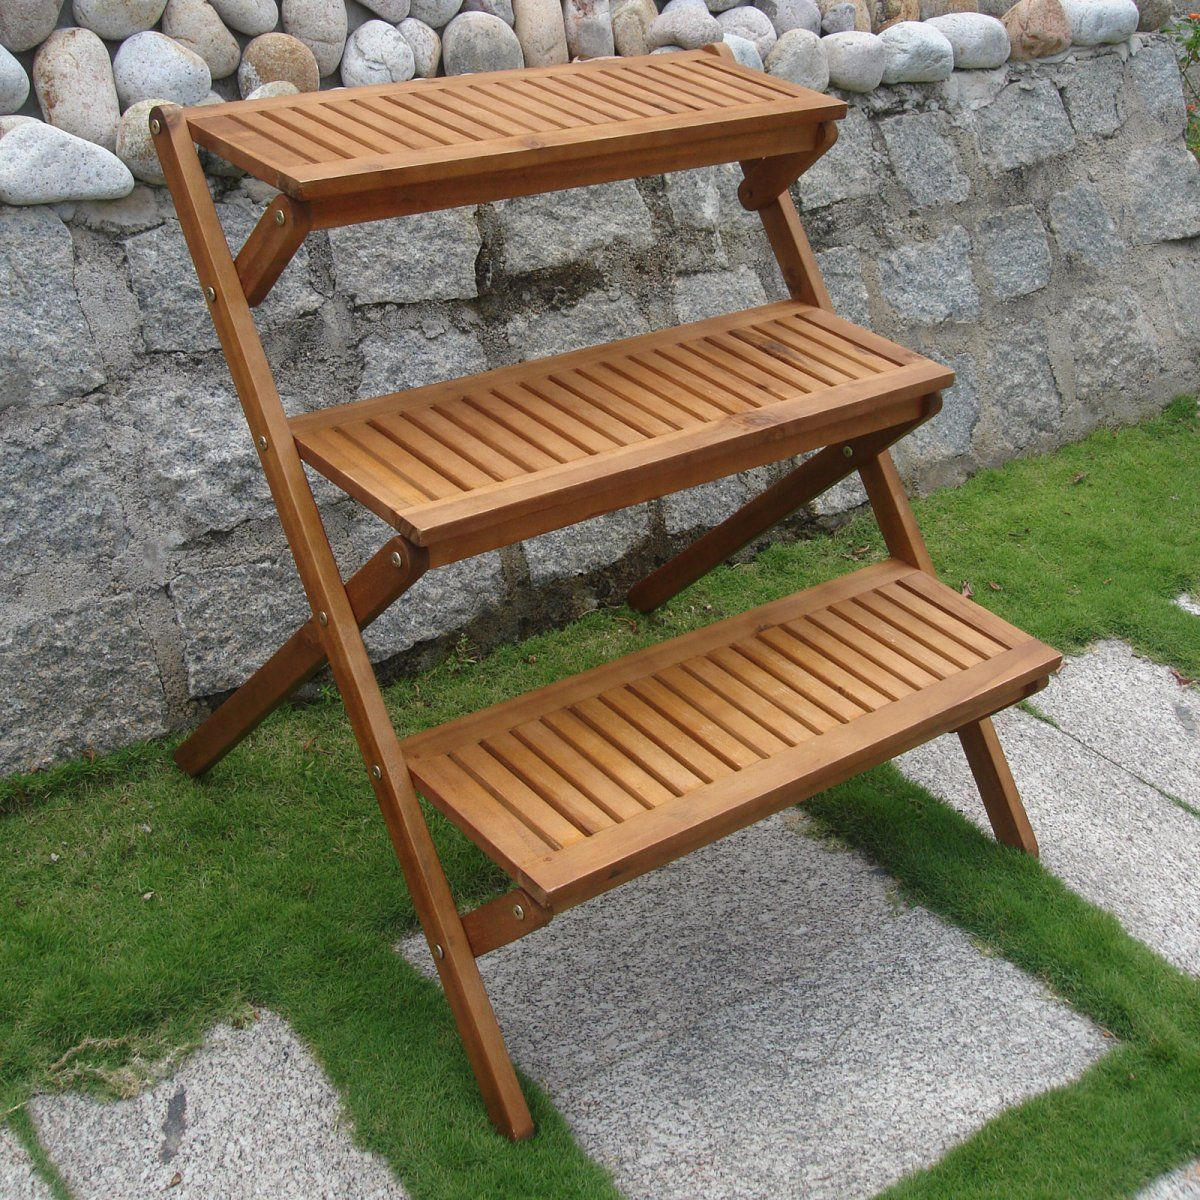 Tiered Plant Holders 3 Tiered Wooden Plant Stand Plants And Other Things